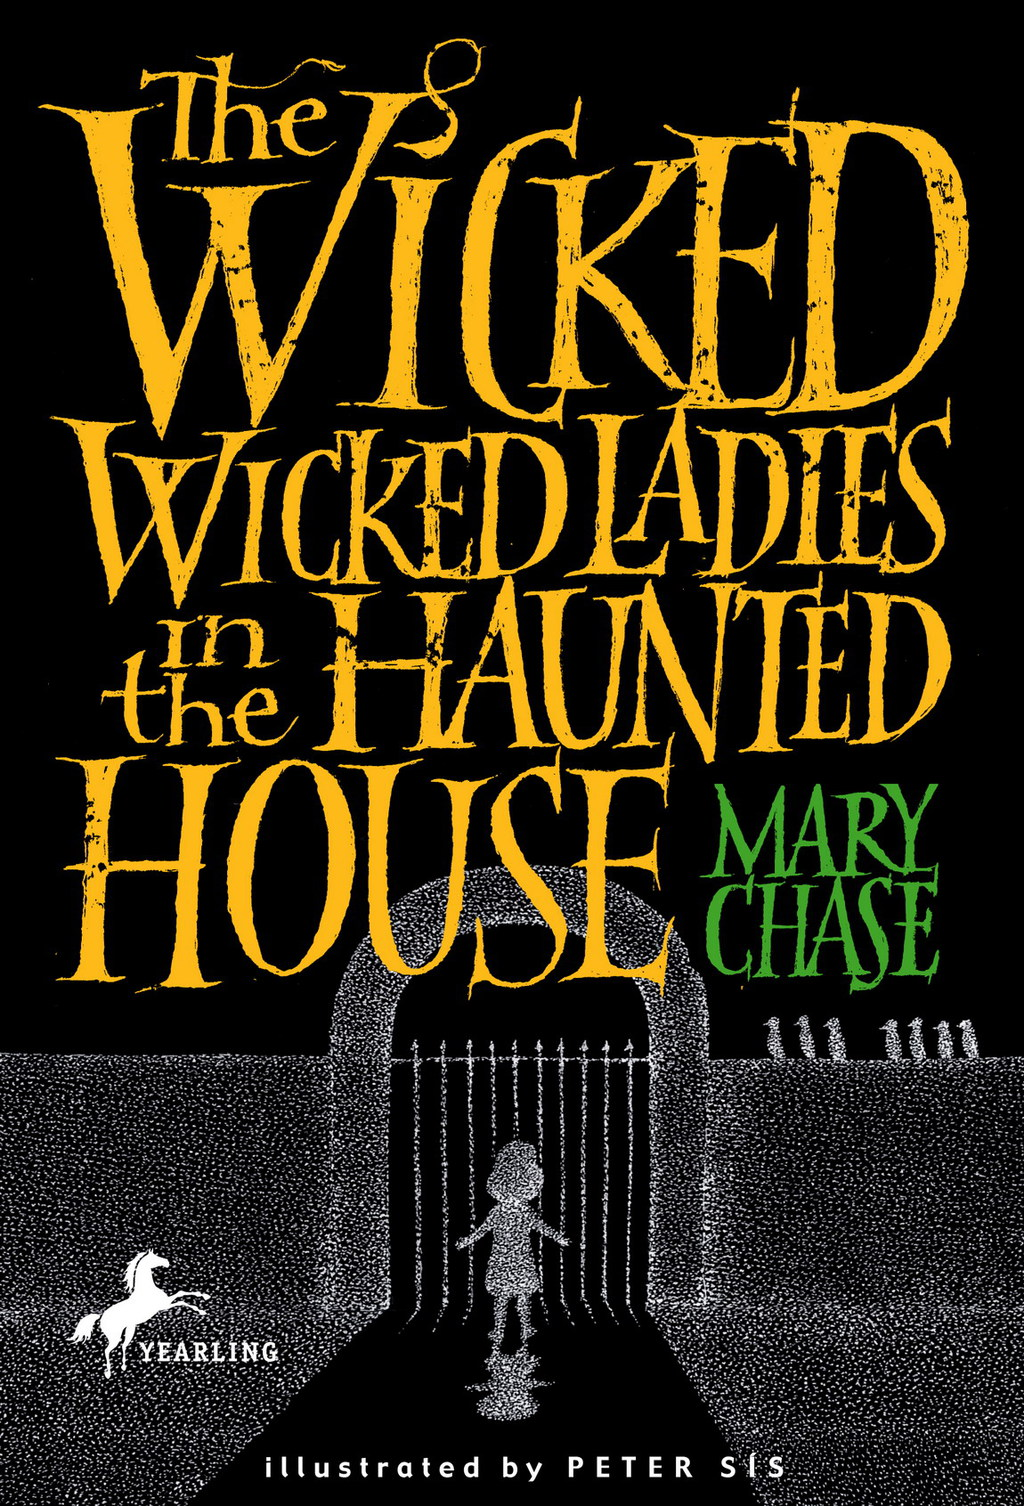 The Wicked, Wicked Ladies in the Haunted House (ebook) eBooks